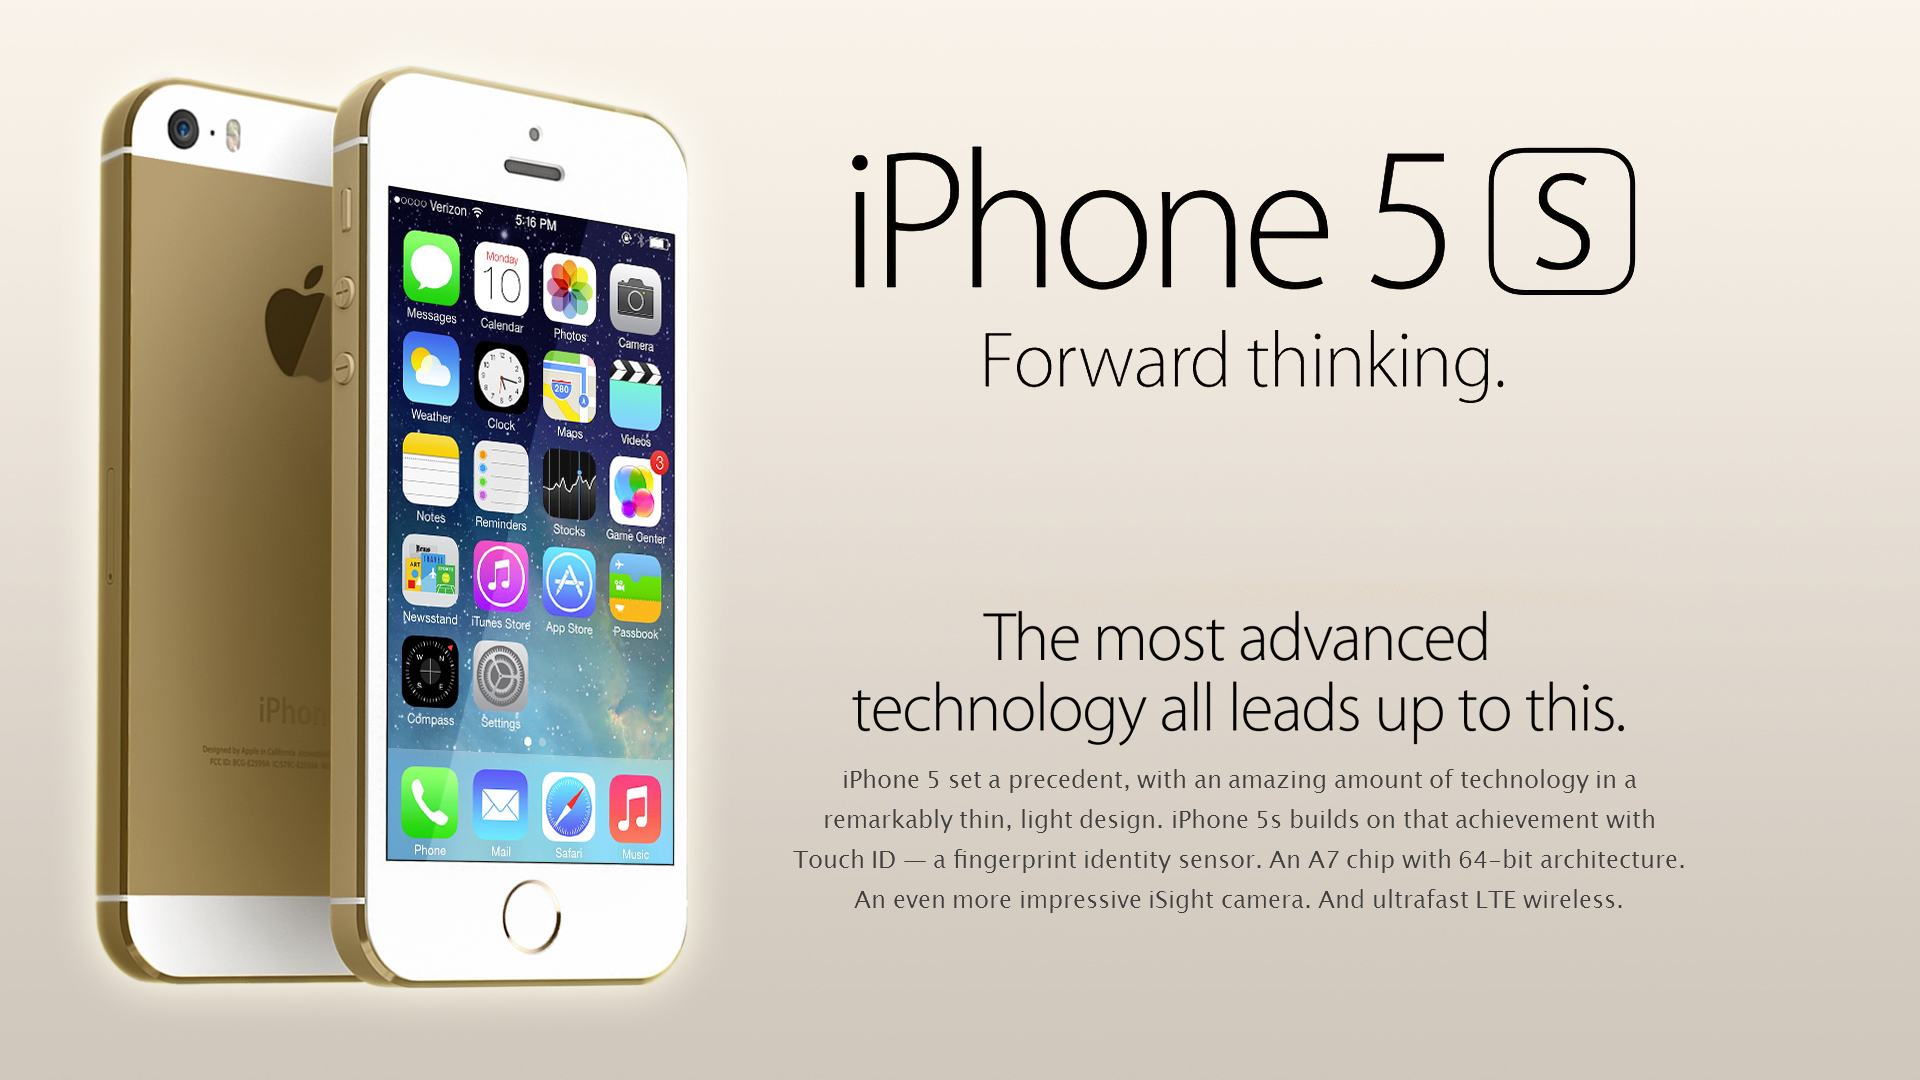 Iphone 5/5S advertising 3D model - Visualization of Iphone 5s based on official materials